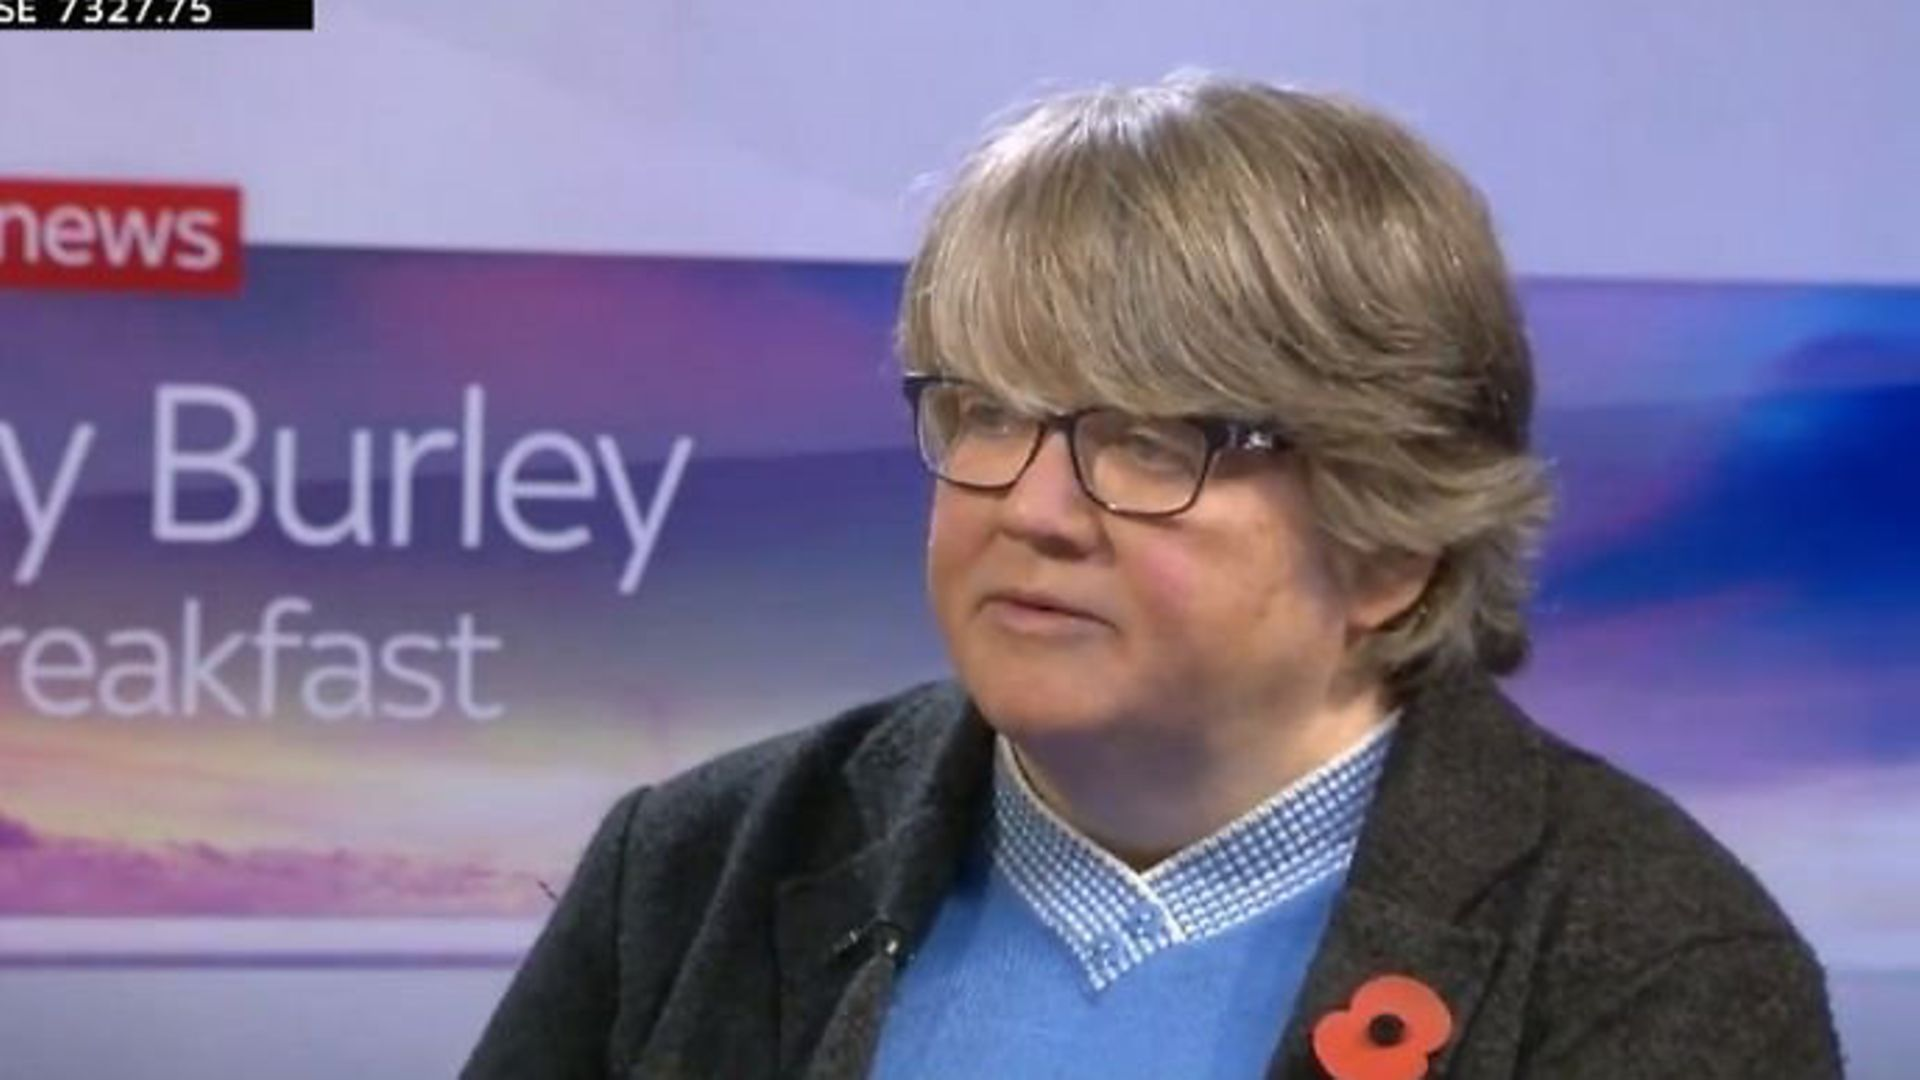 Work and pension minister Therese Coffey said the public was not interested in 'some wallpaper or sofas' in Boris Johnson's flat - Credit: Sky News